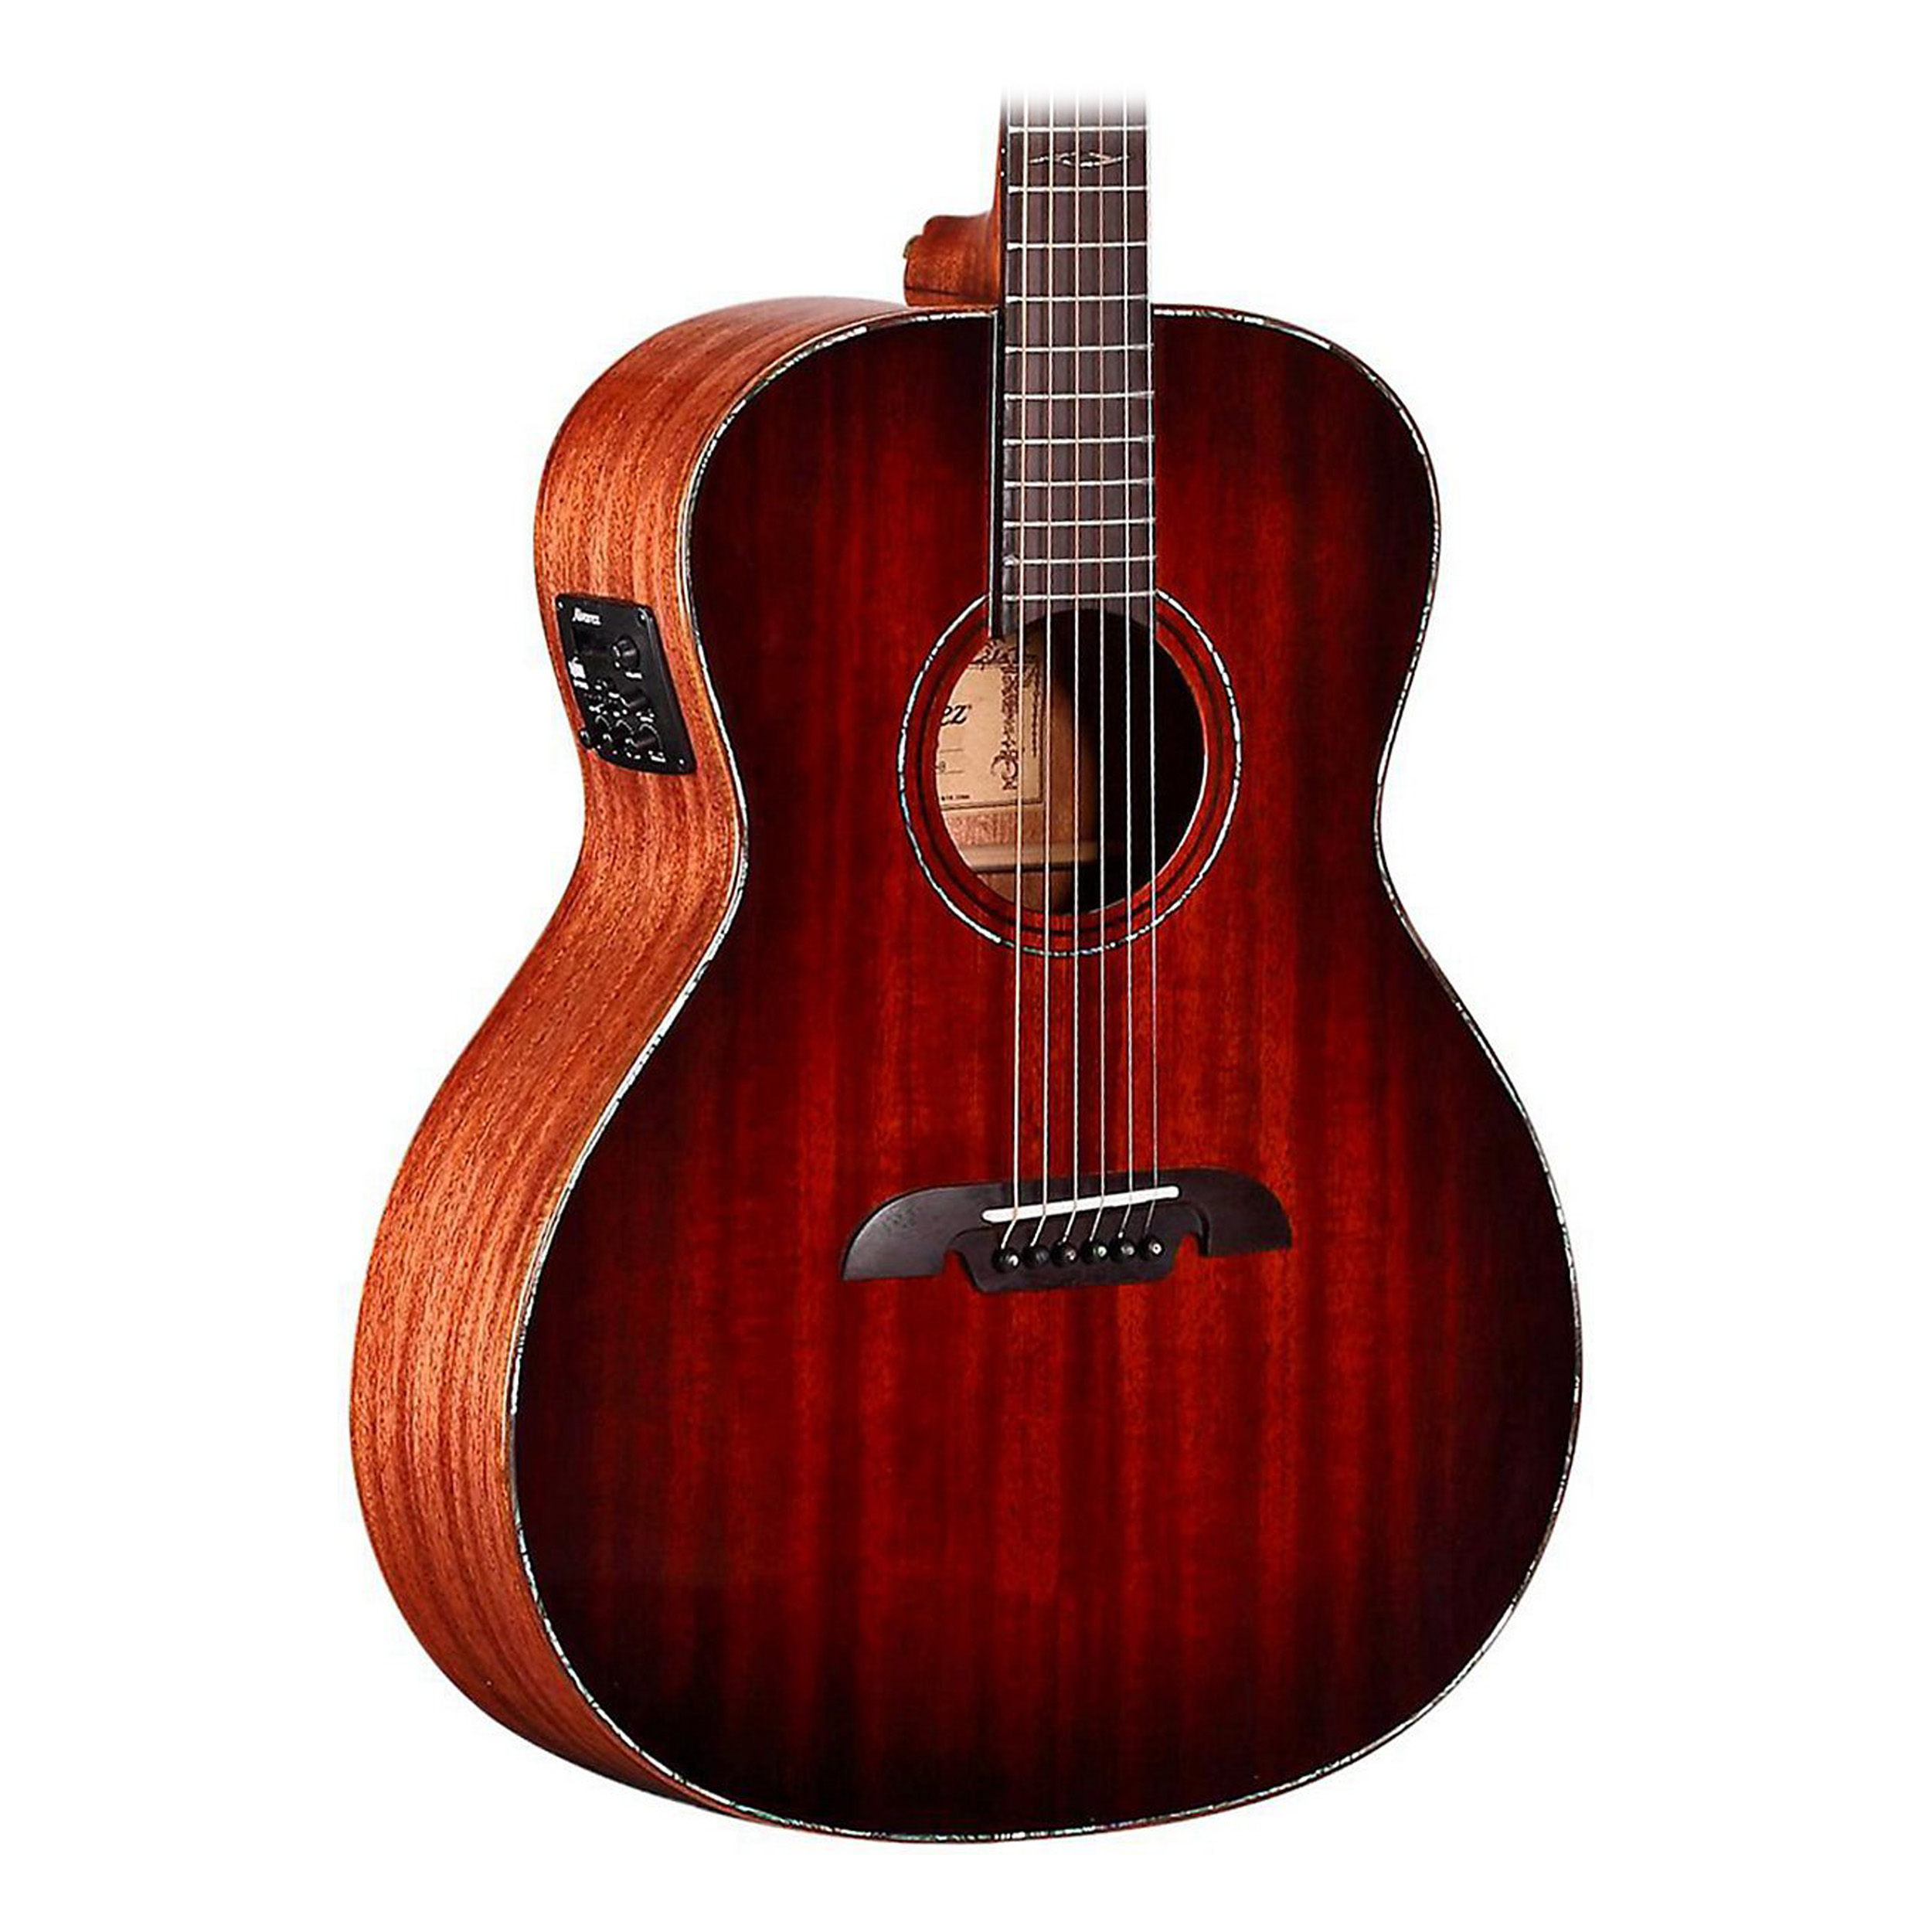 Alvarez MGA66E Masterworks Grand Auditorium Acoustic-Electric Guitar Shadowburst by Alvarez